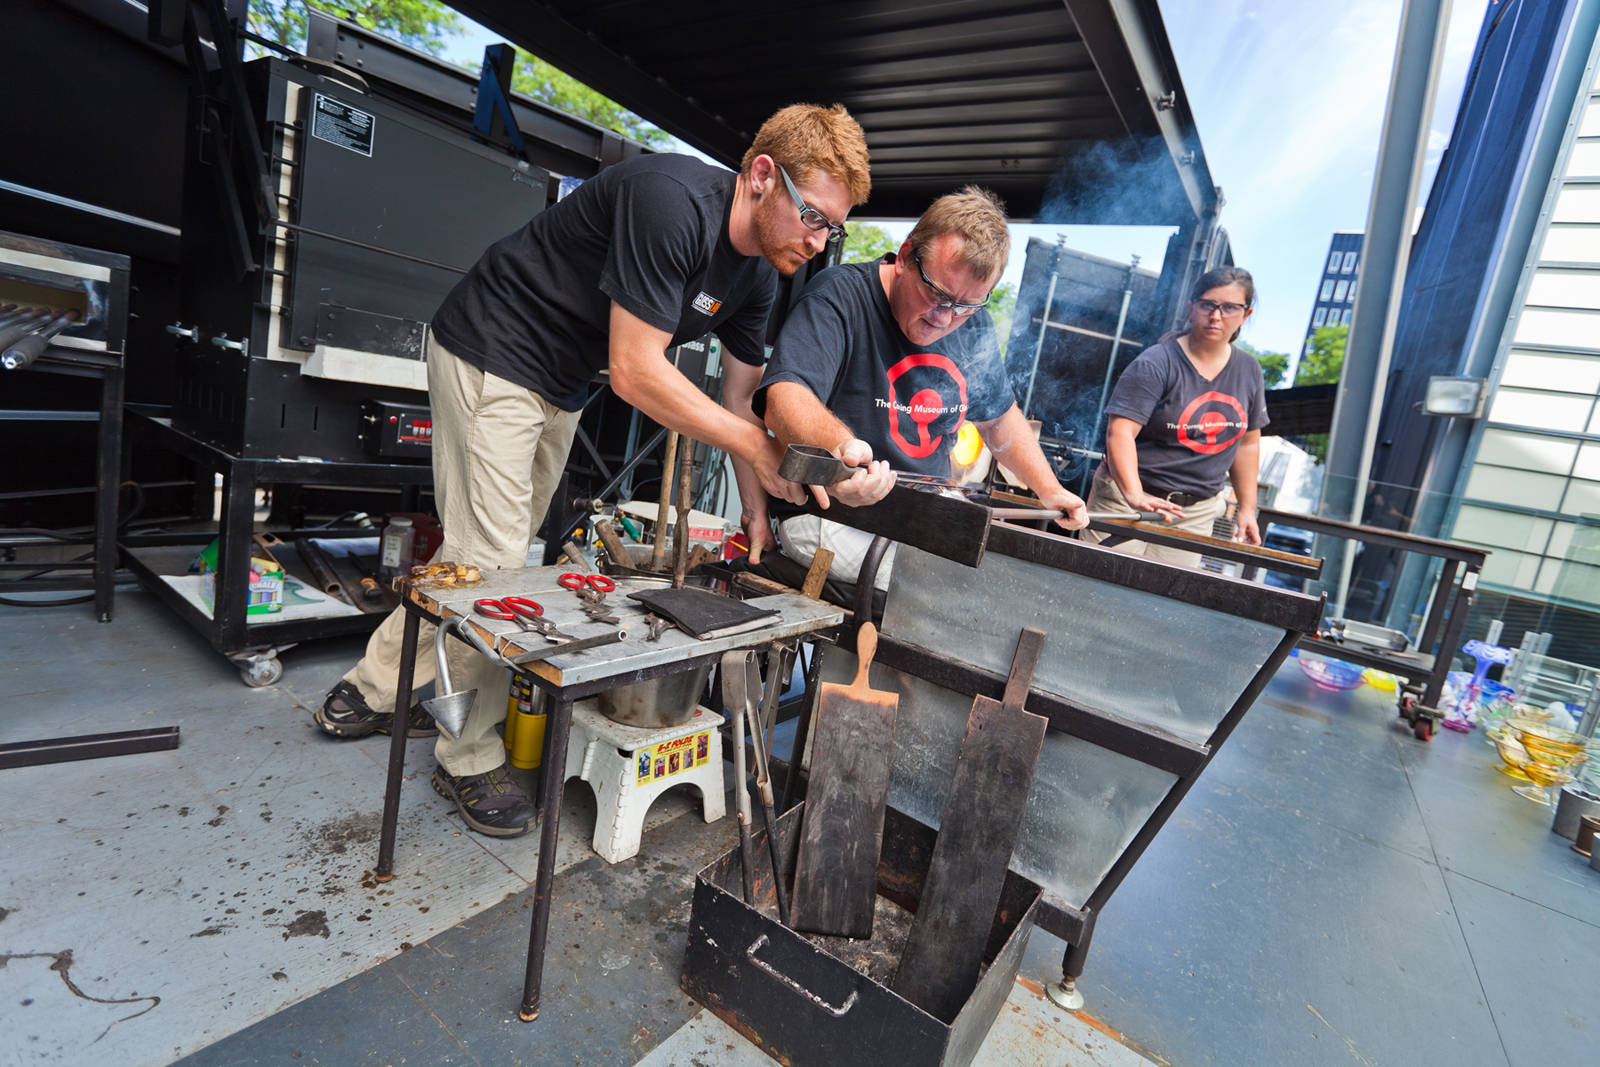 Gaffers George Kennard, Dane Jack, and Catherine Ayers work with Masamichi Udagawa and Sigi Moeslinger at GlassLab in Corning